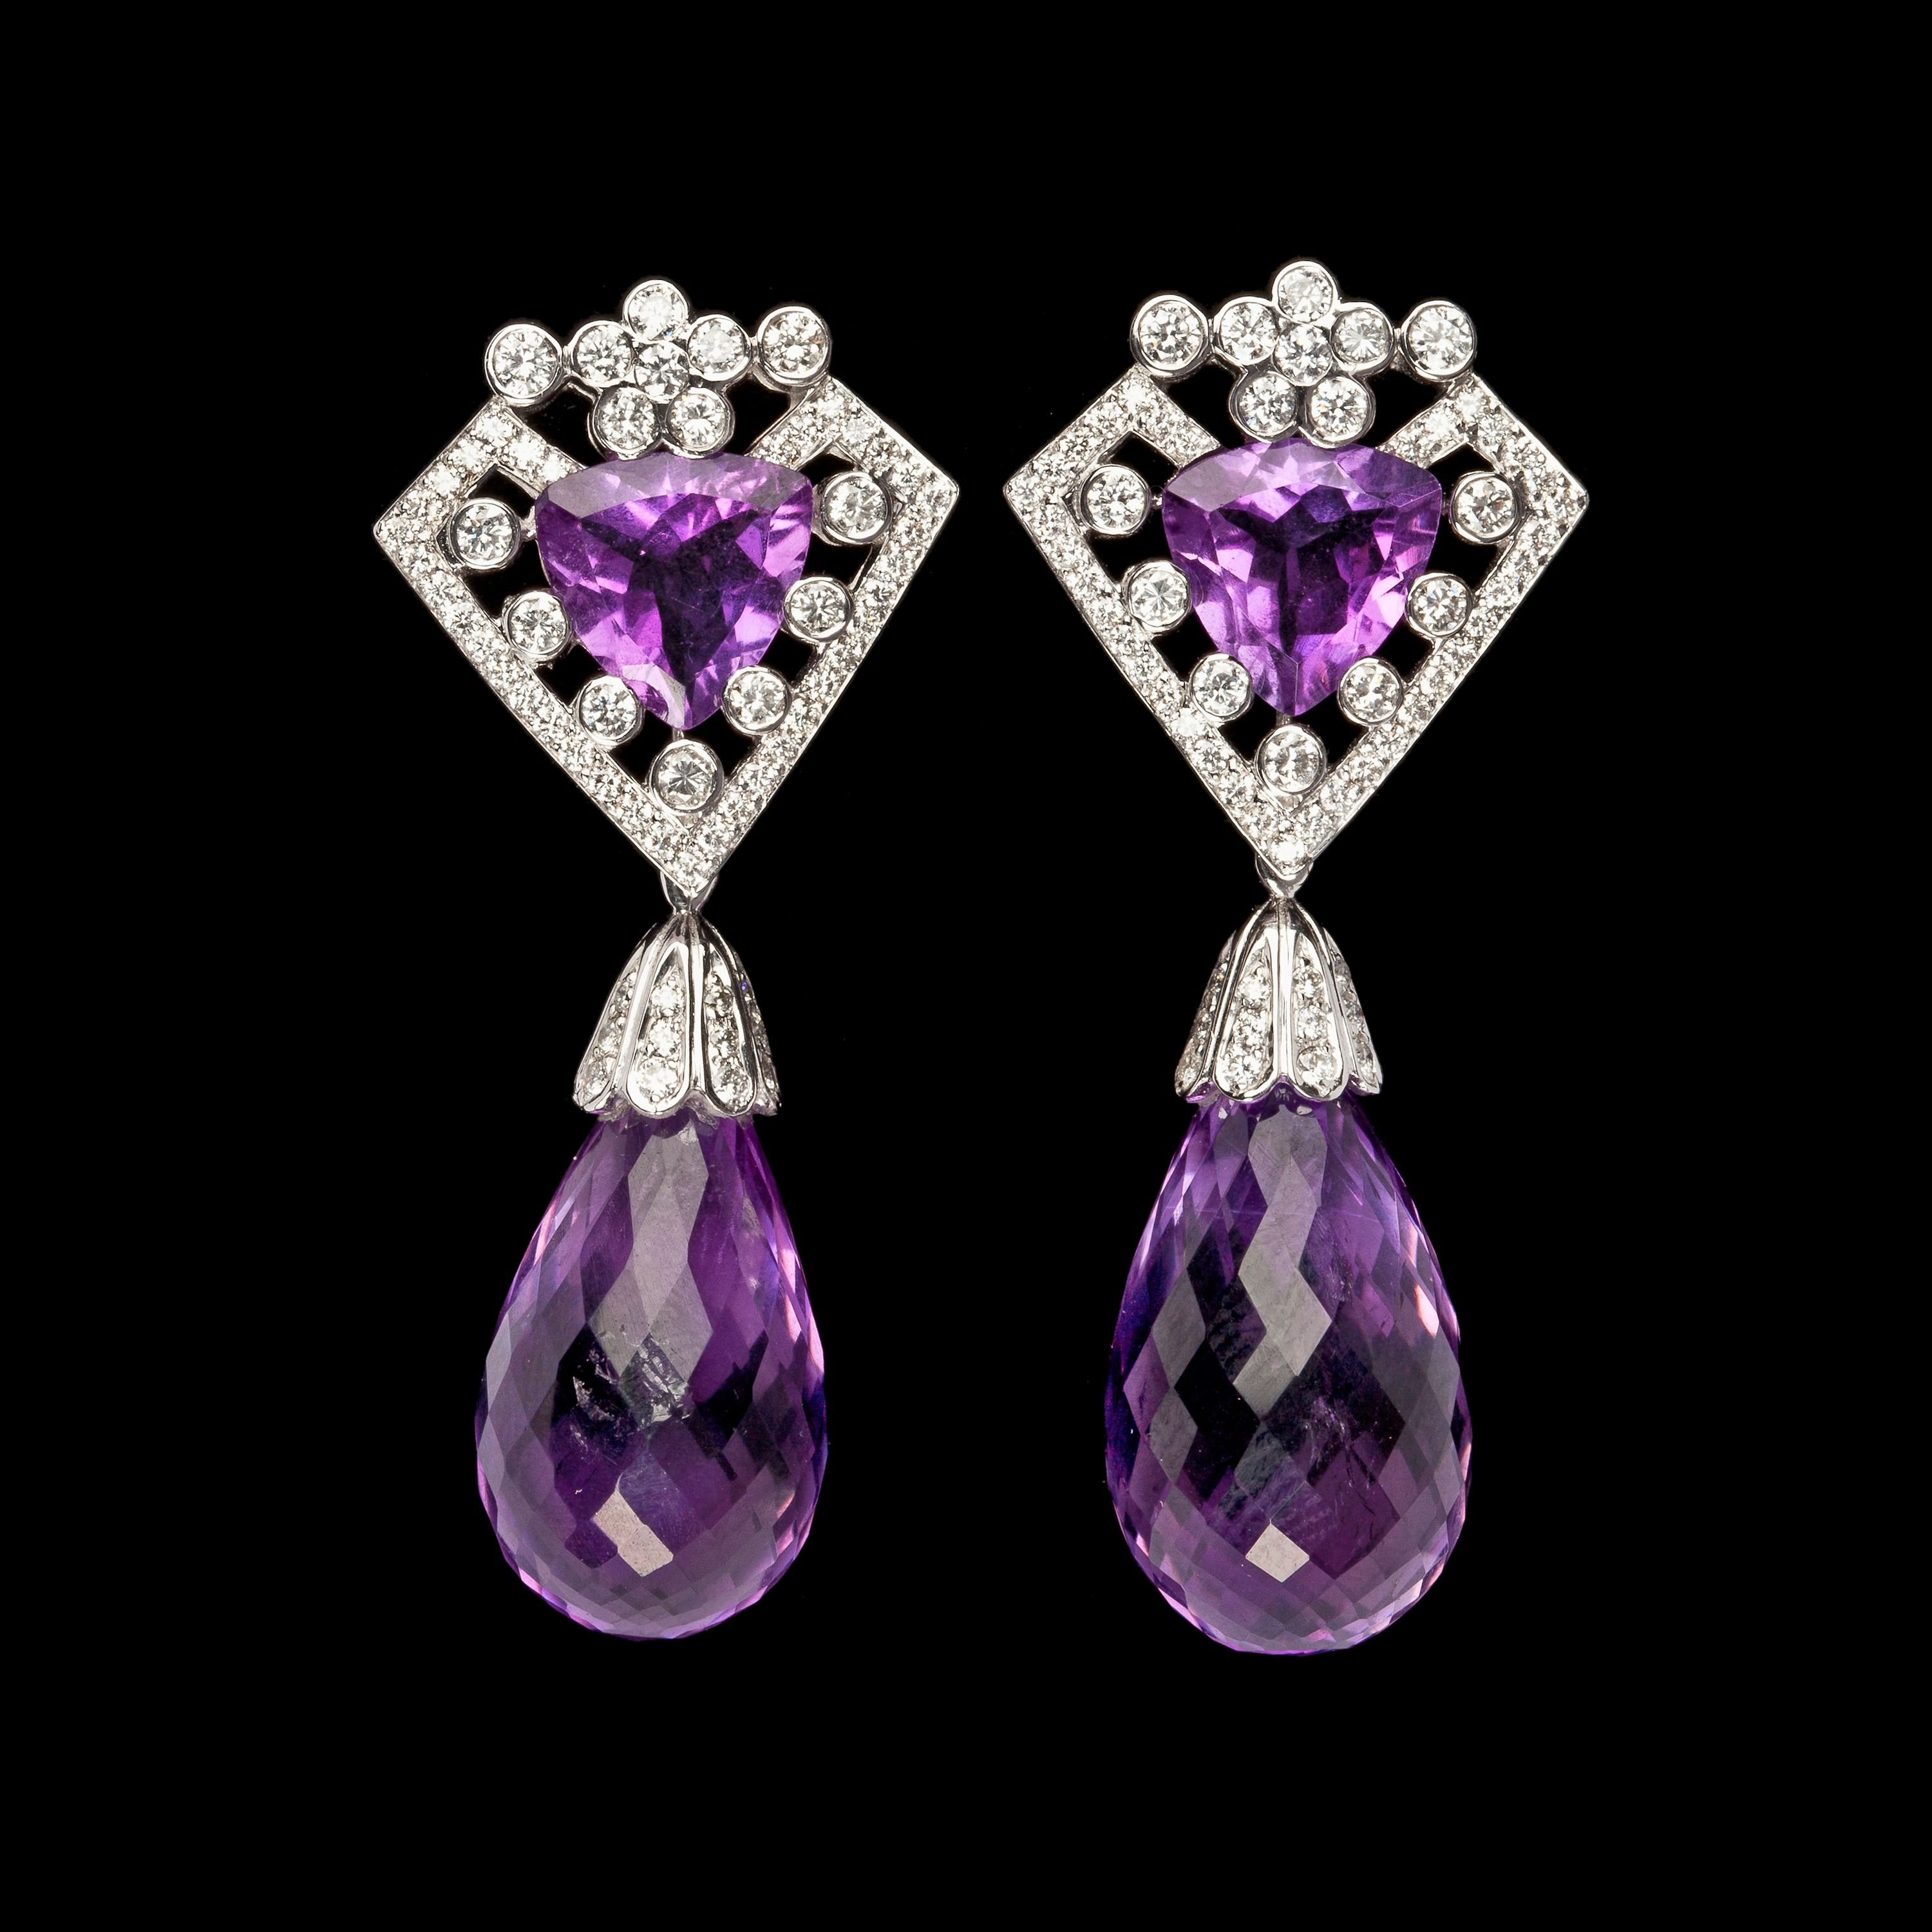 EARRINGS, BRILLIANT CUT DIAMONDS, 1.63 CTS, WITH HANGING BRIOLETTE CUT AMETHYSTS. 18k white gold. L. 4,5 cm.